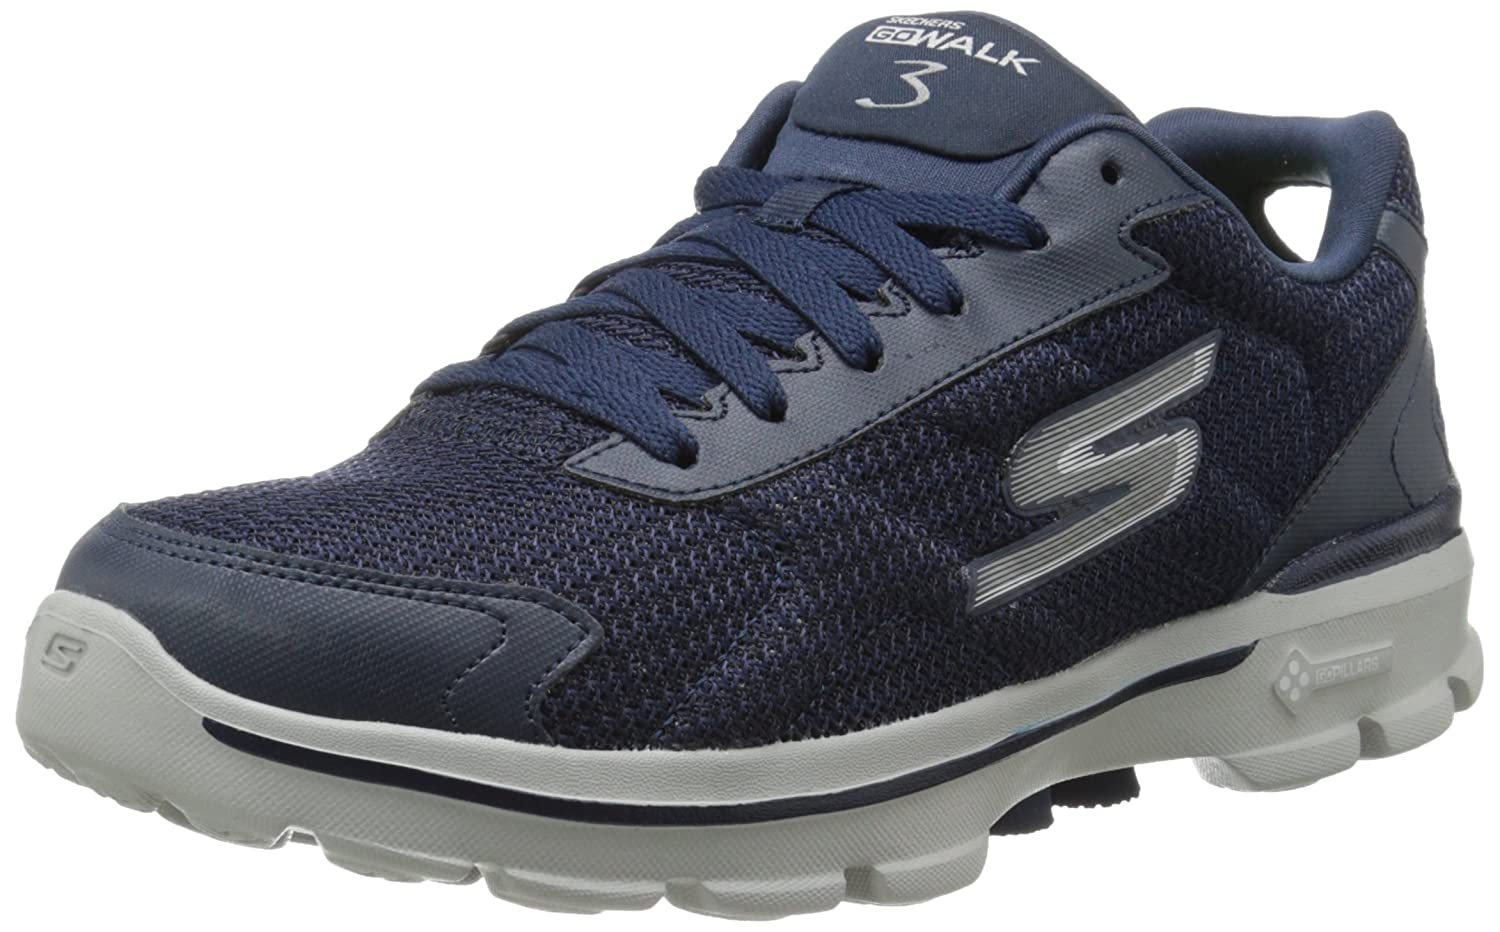 Skechers Performance Men's Go Walk 3 Fitknit Lace Up Walking